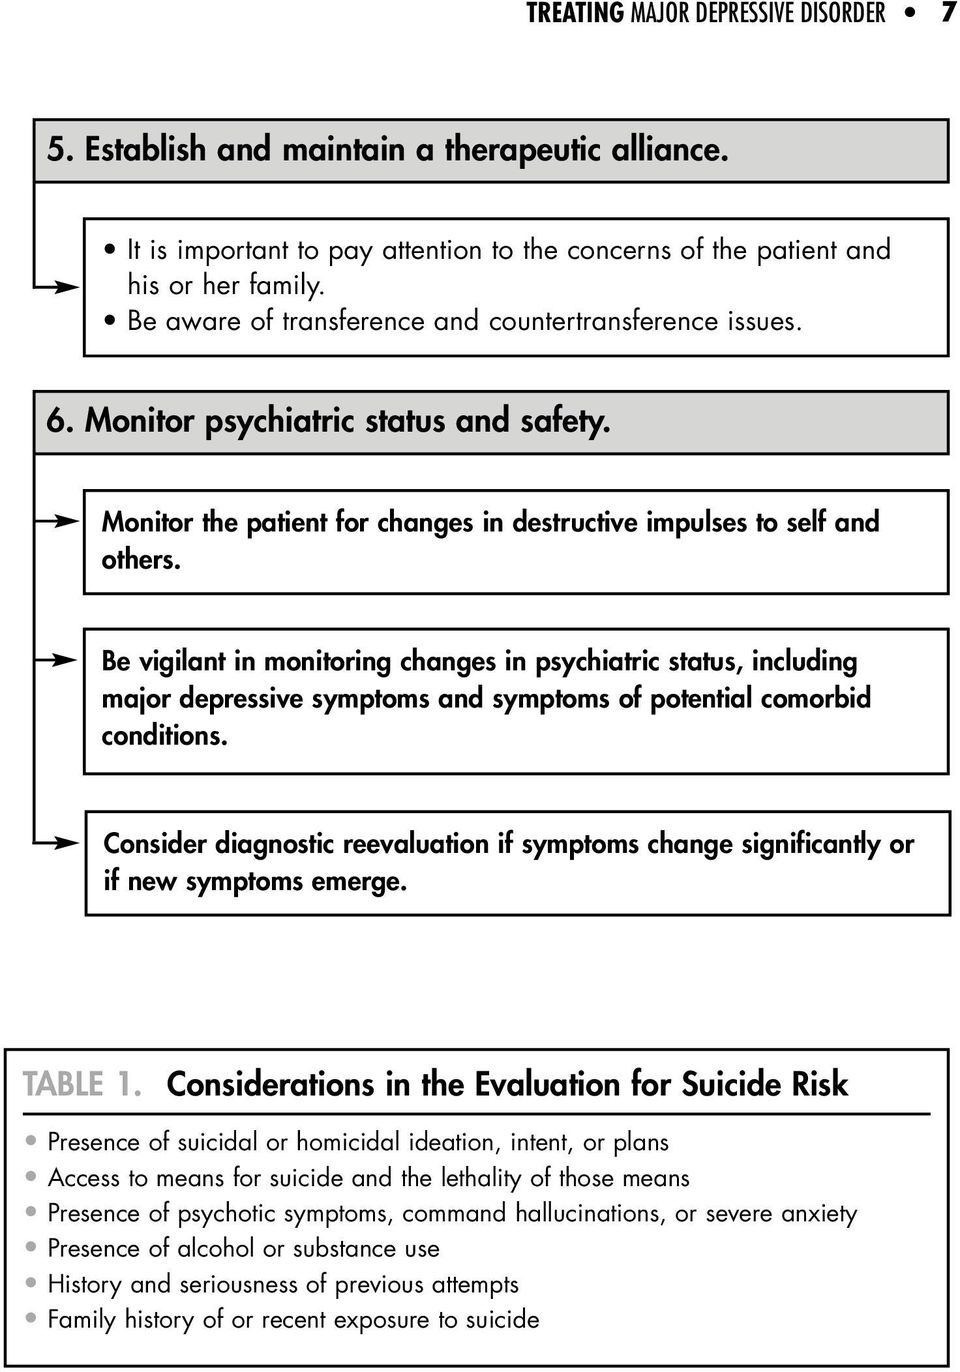 Be vigilant in monitoring changes in psychiatric status, including major depressive symptoms and symptoms of potential comorbid conditions.